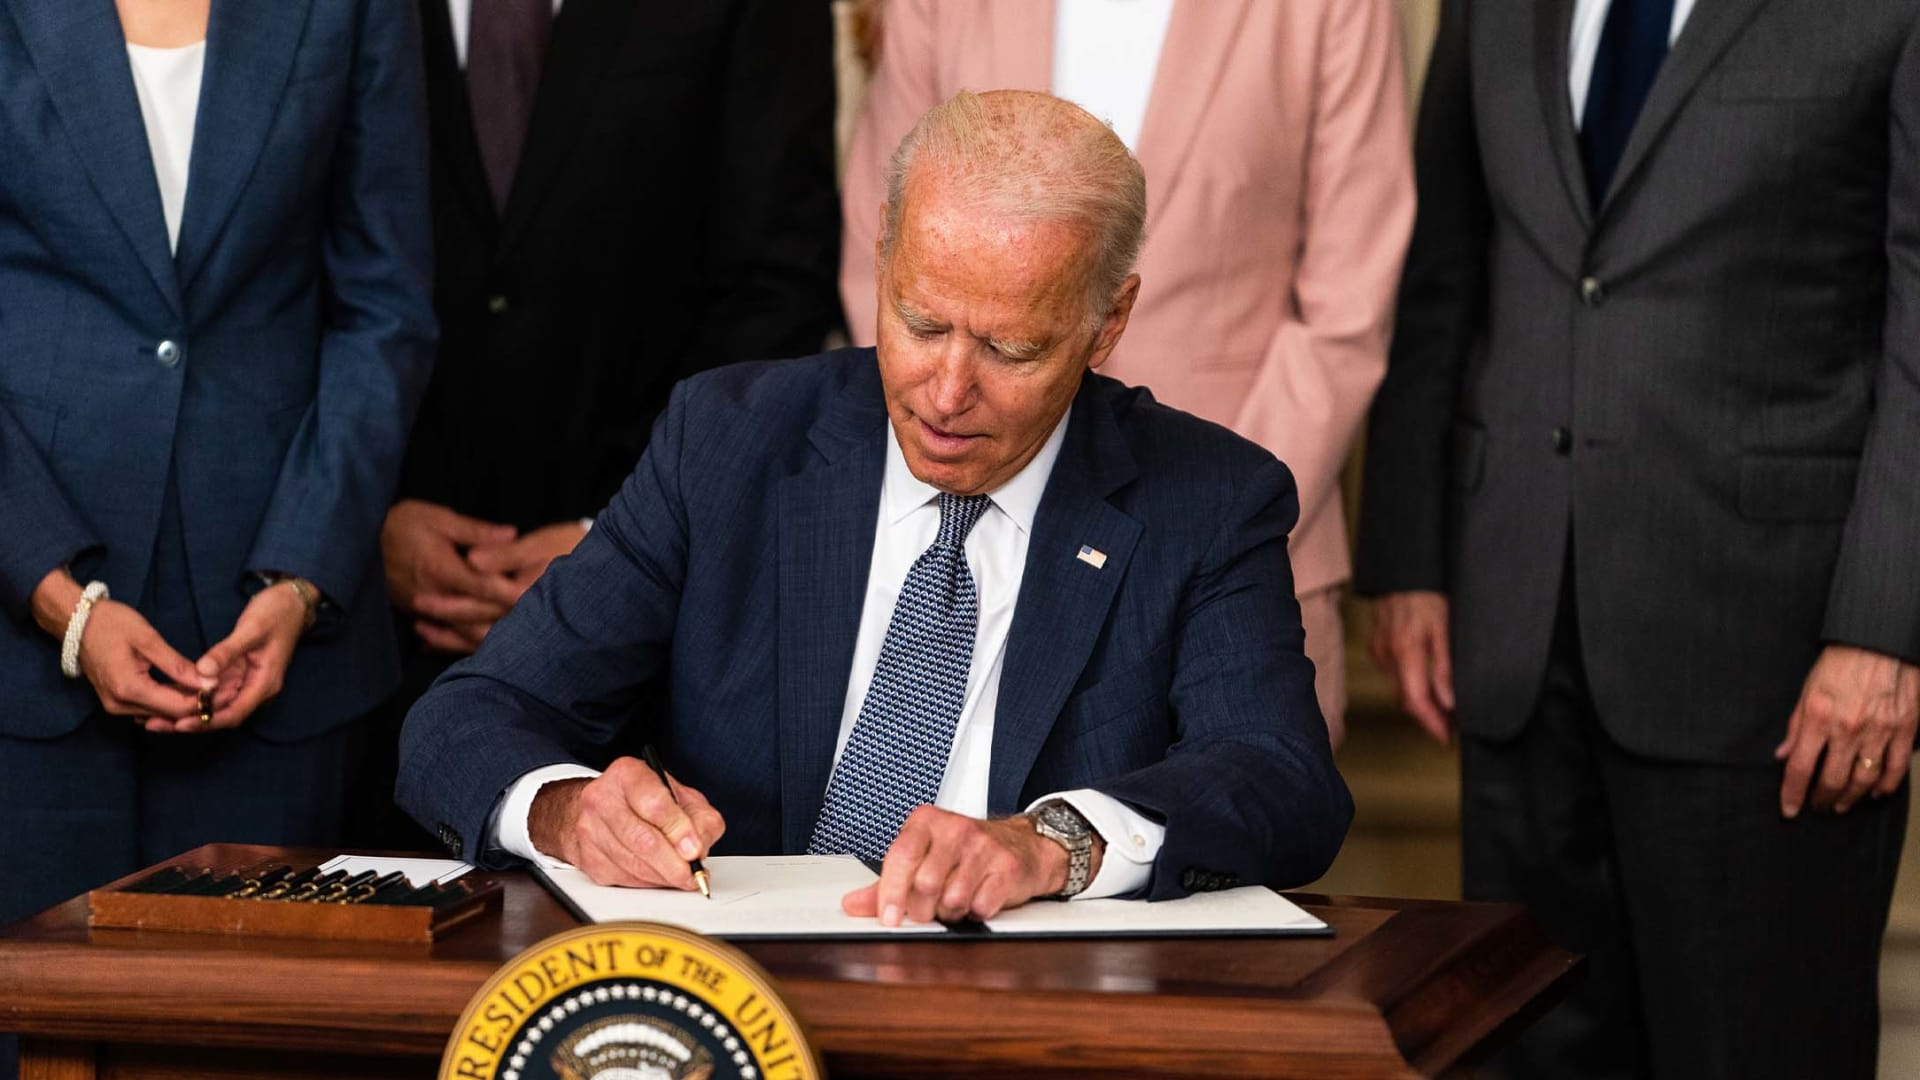 President Joe Biden delivers remarks and signs an executive order on promoting competition in the American economy in the State Dining Room of the White House on July 9, 2021.